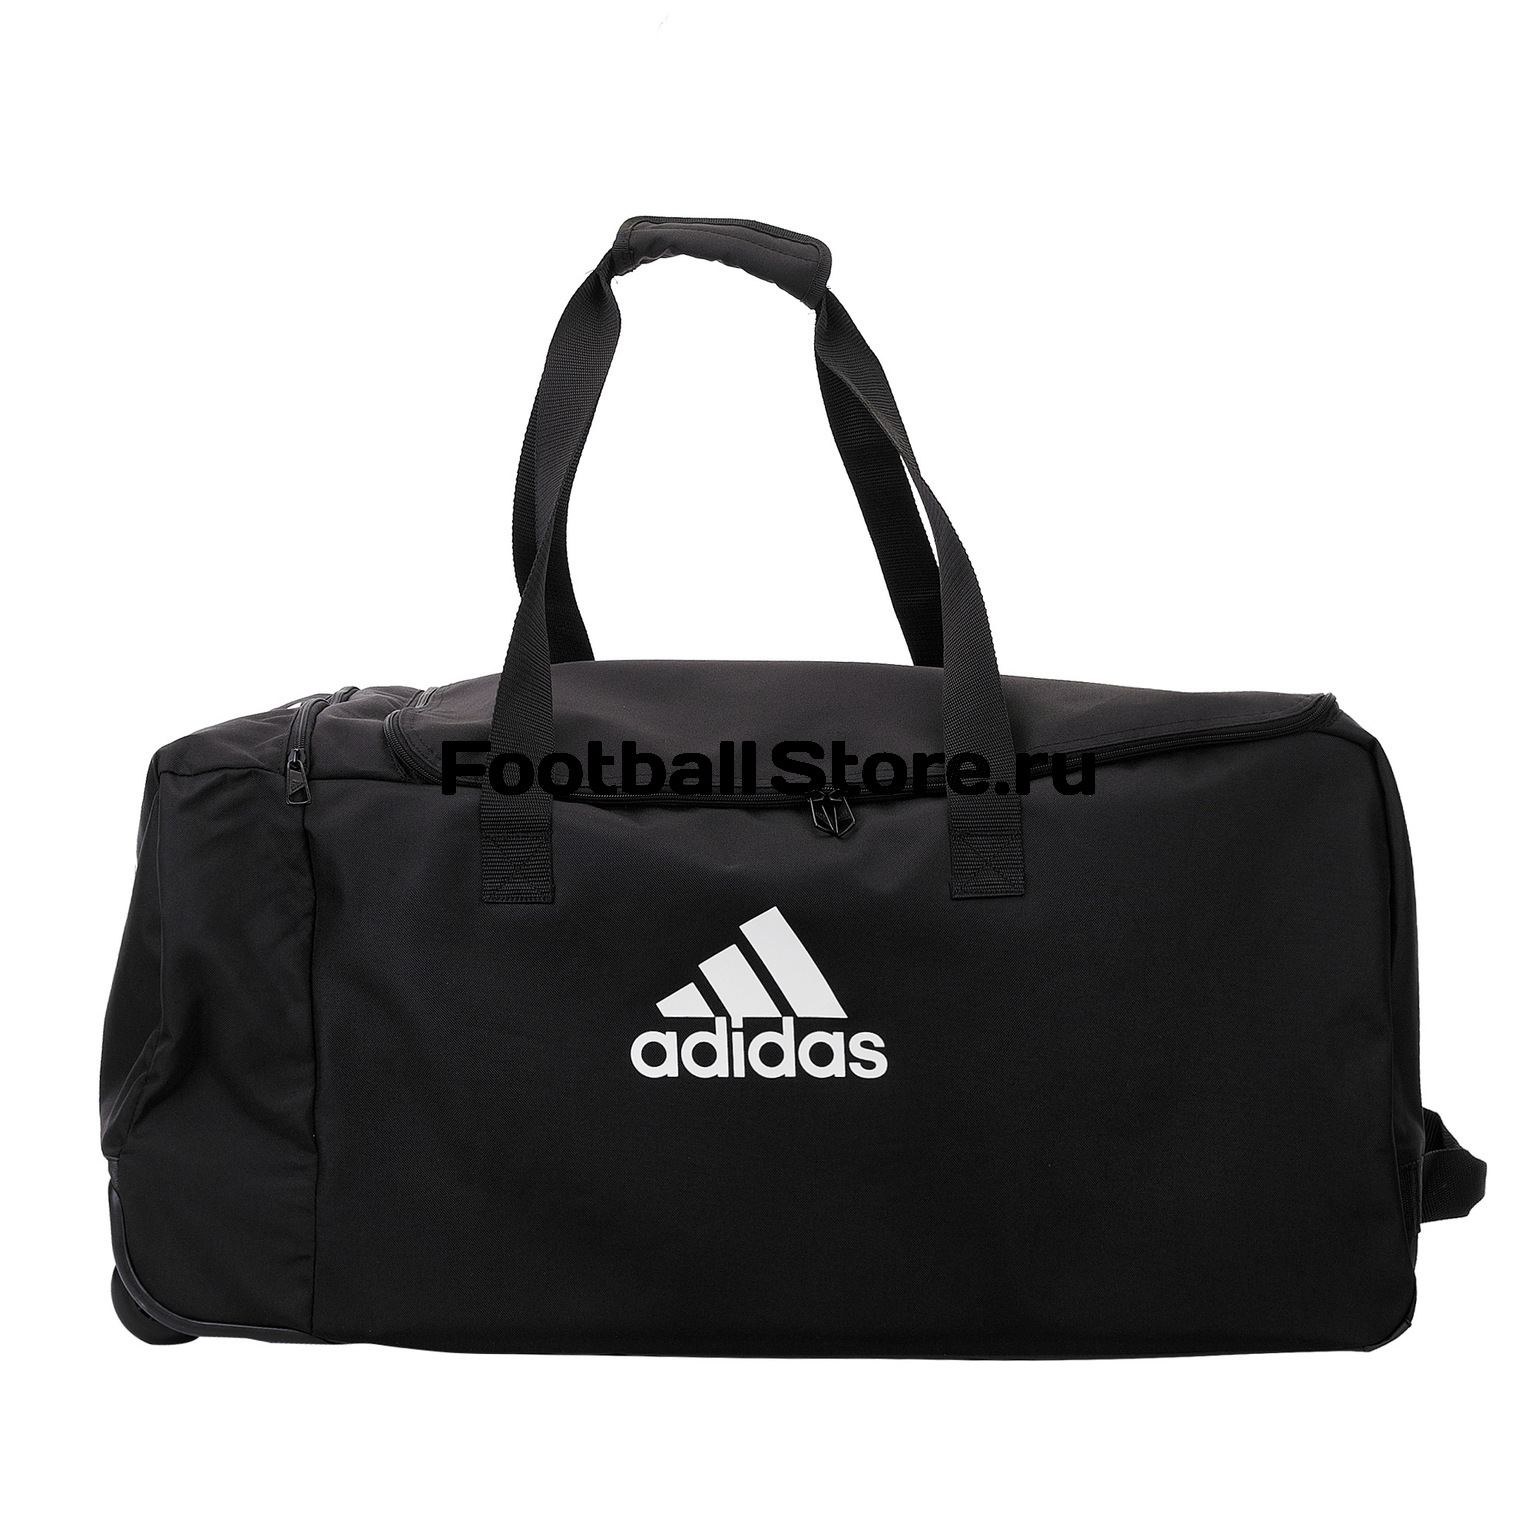 Сумка Adidas Tiro XL DS8875 рюкзак adidas tiro bp bs4761